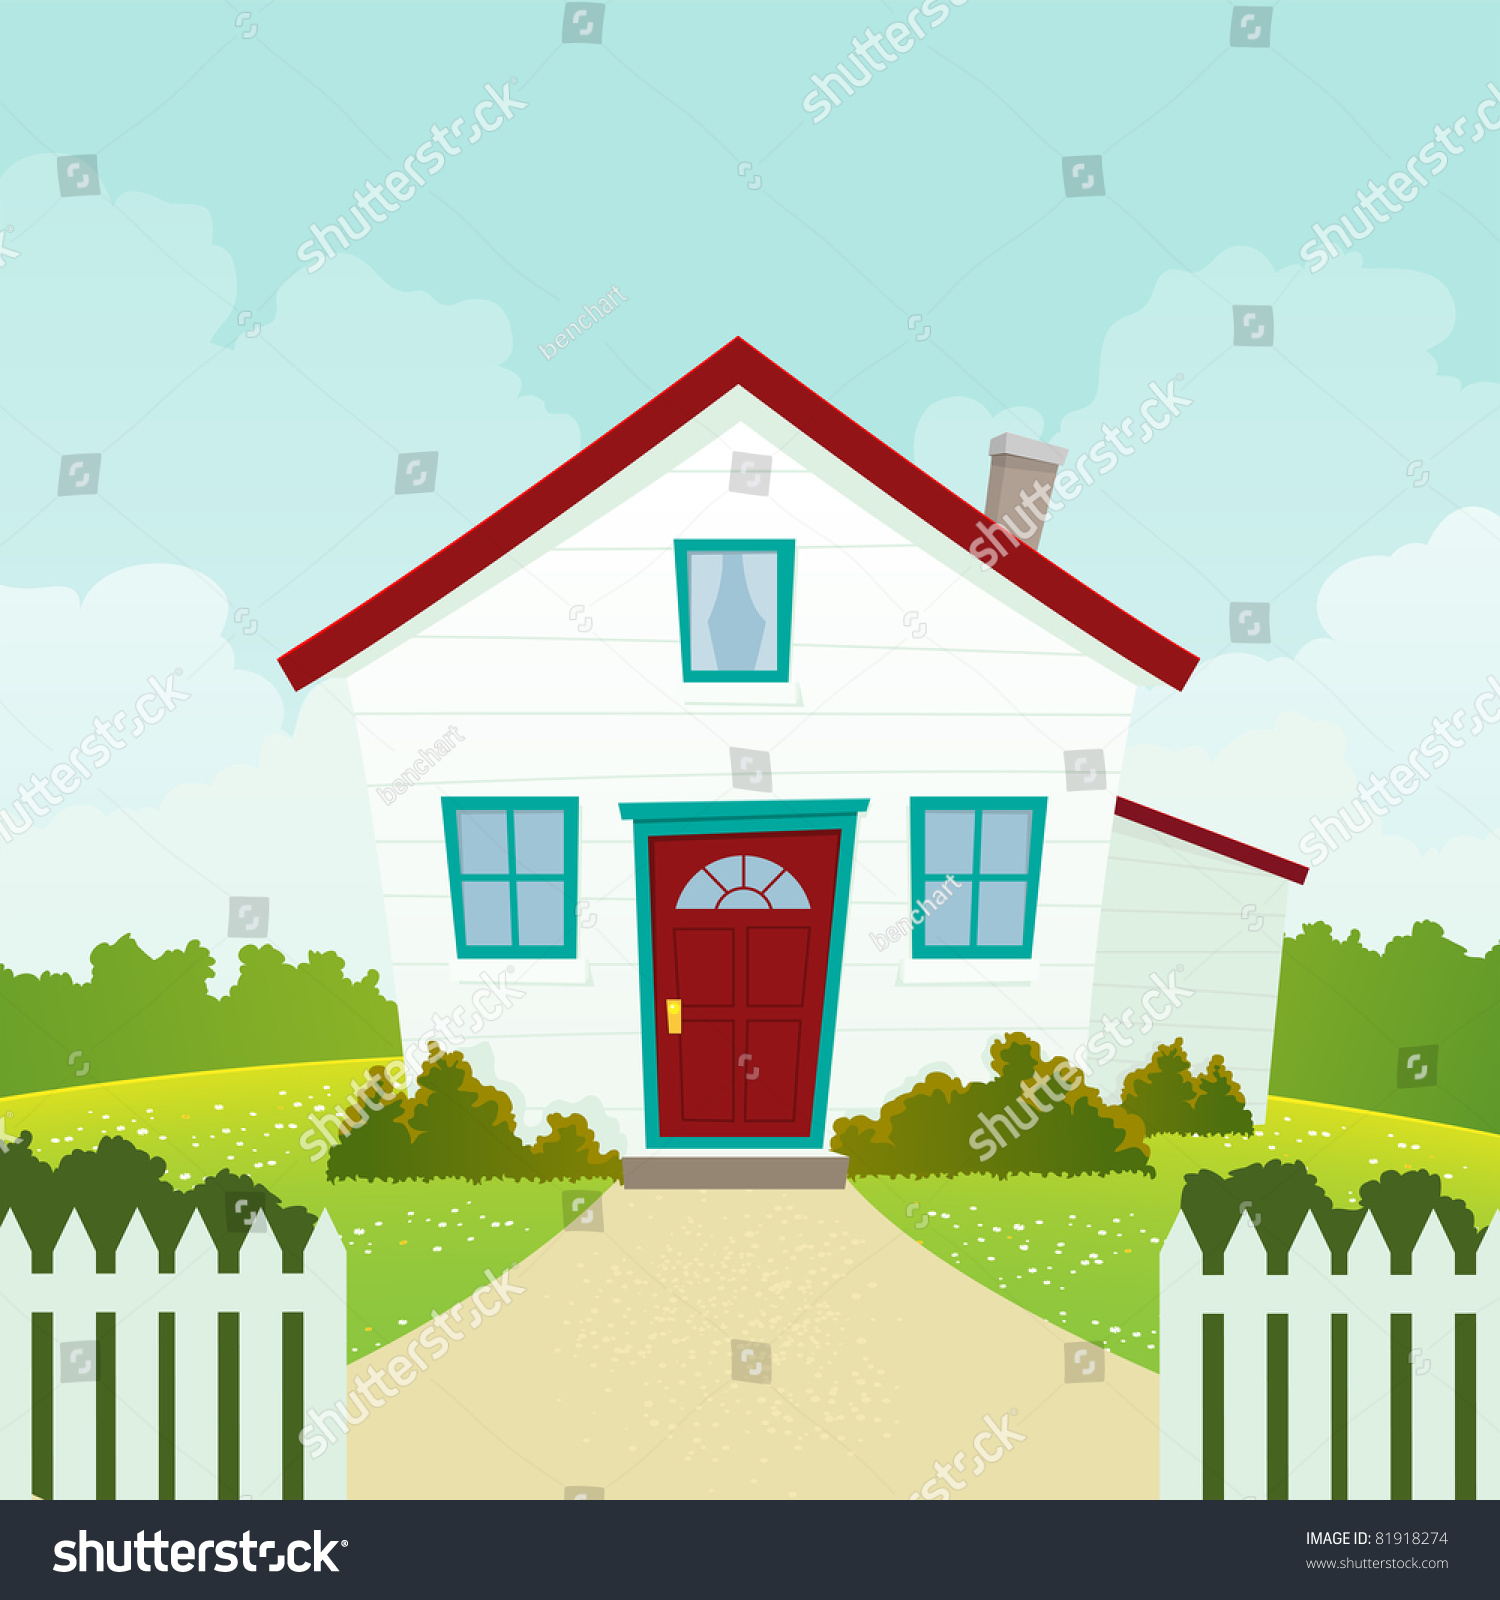 Home sweet home illustration friendly welcoming stock for American house music